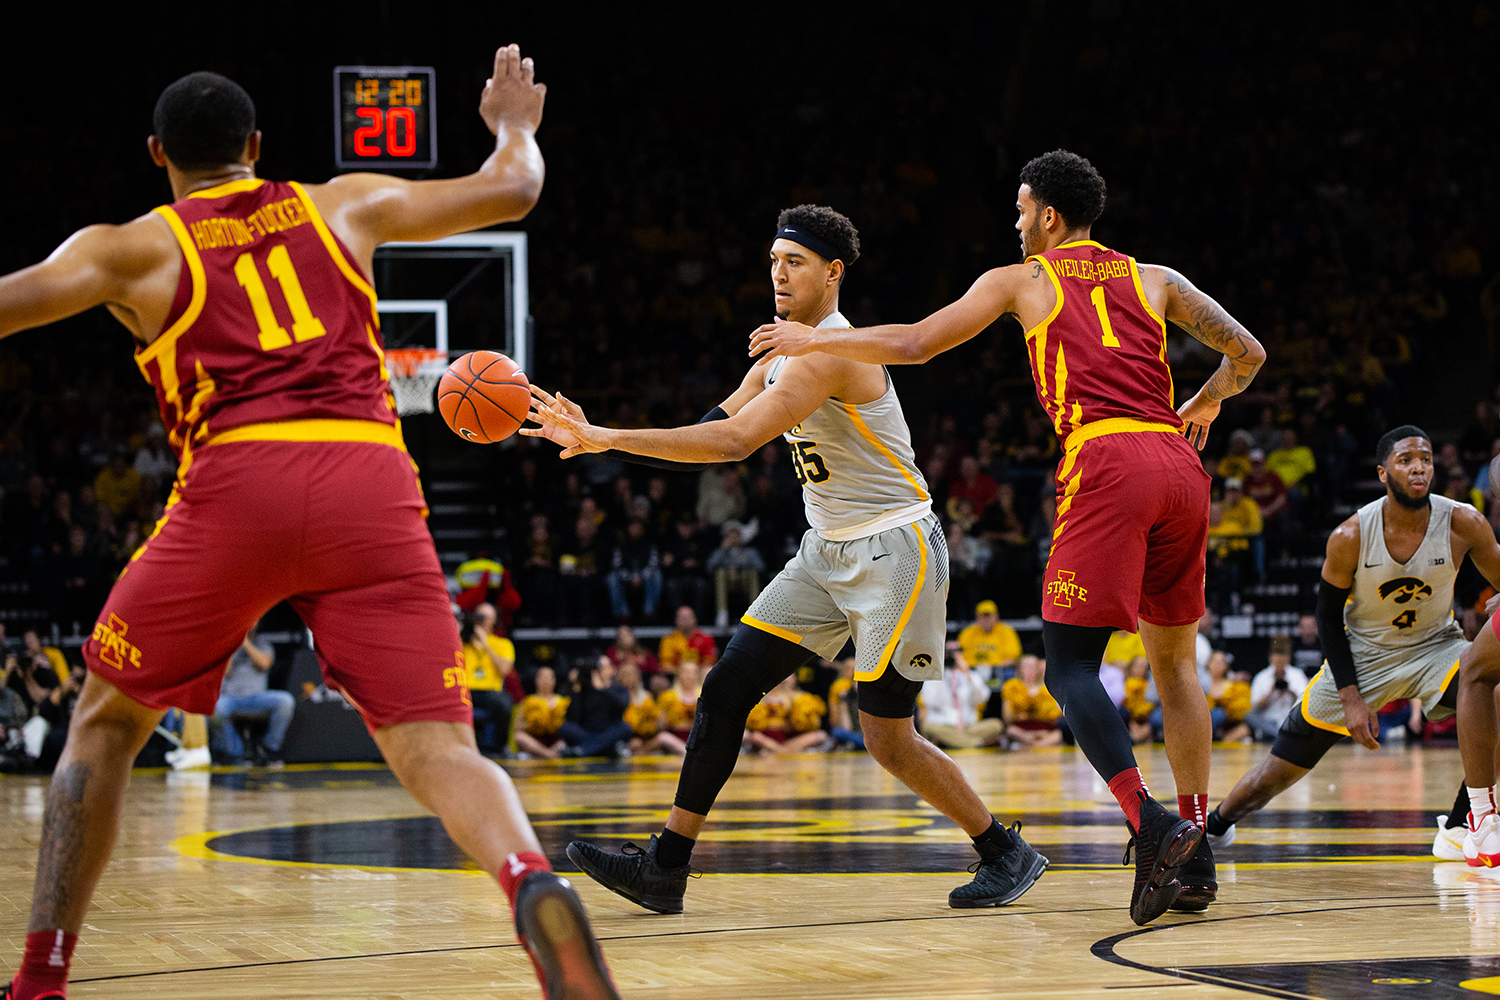 Iowa forward Cordell Pemsl catches a pass during Iowa's game against Iowa State at Carver-Hawkeye Arena on December 6, 2018. The Hawkeyes defeated the Cyclones 98-84.(Megan Nagorzanski/The Daily Iowan)